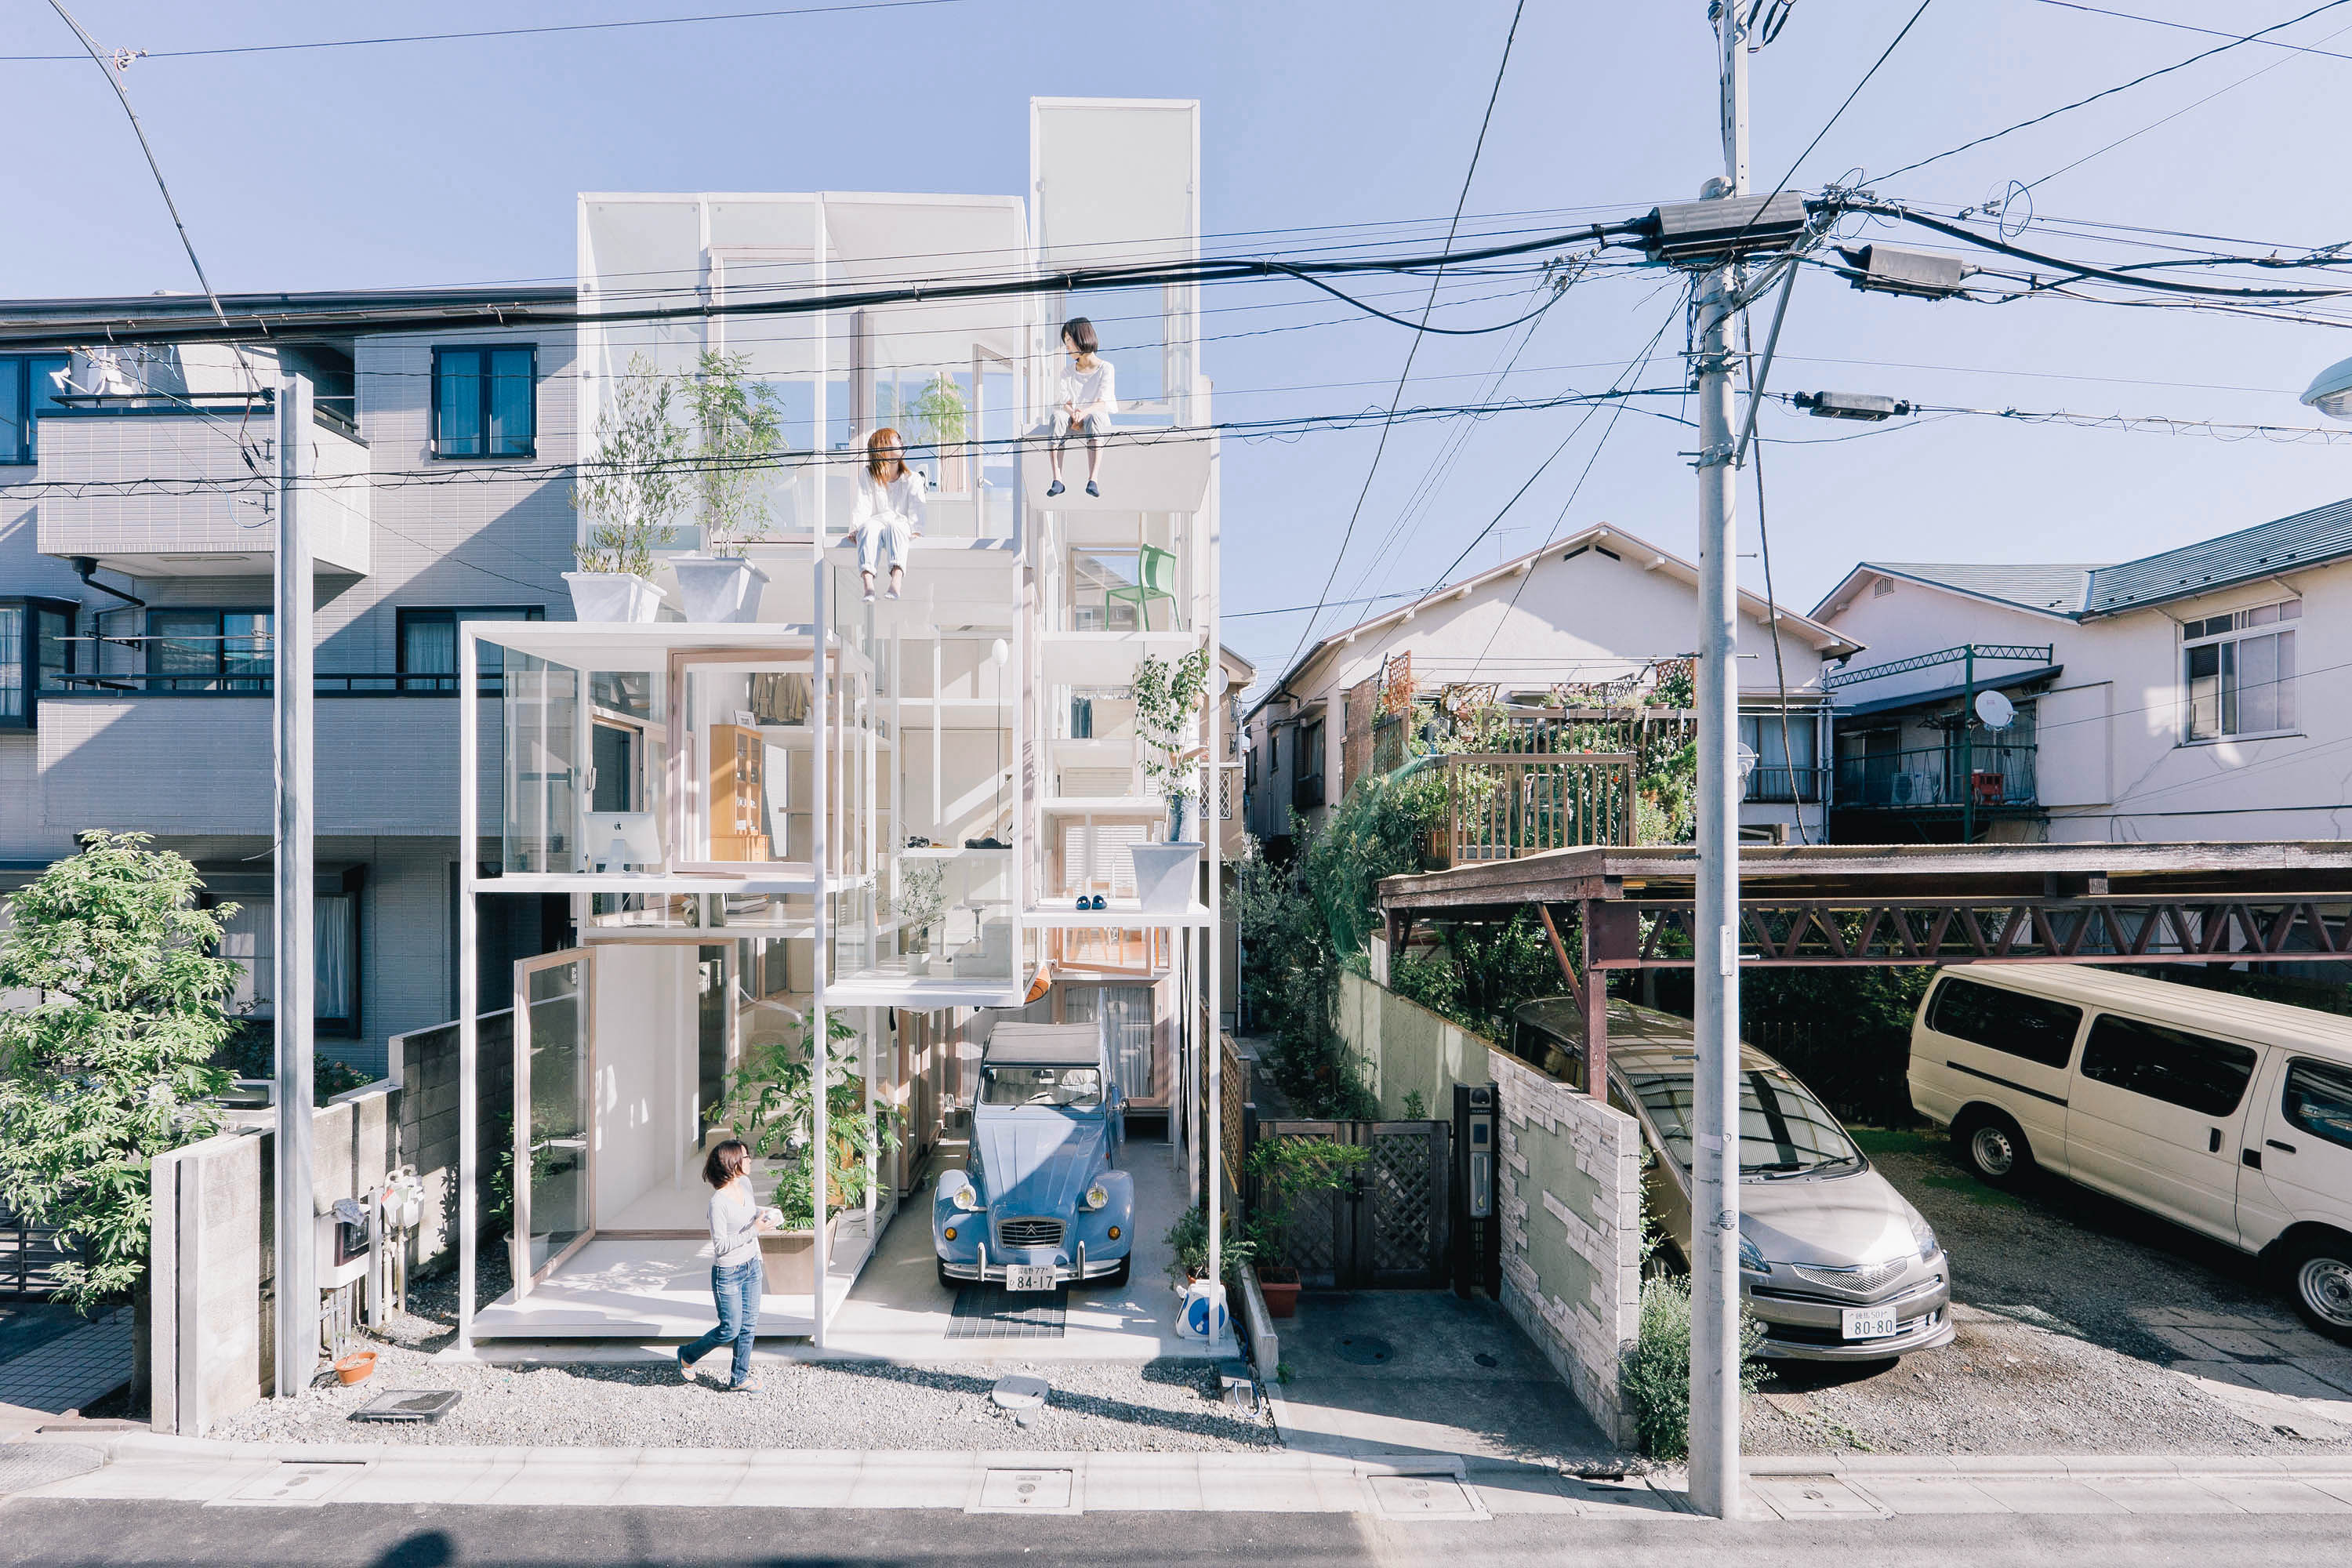 Guest Post: Japan/Tokyo: Architecture That Will Change Your View On Housing